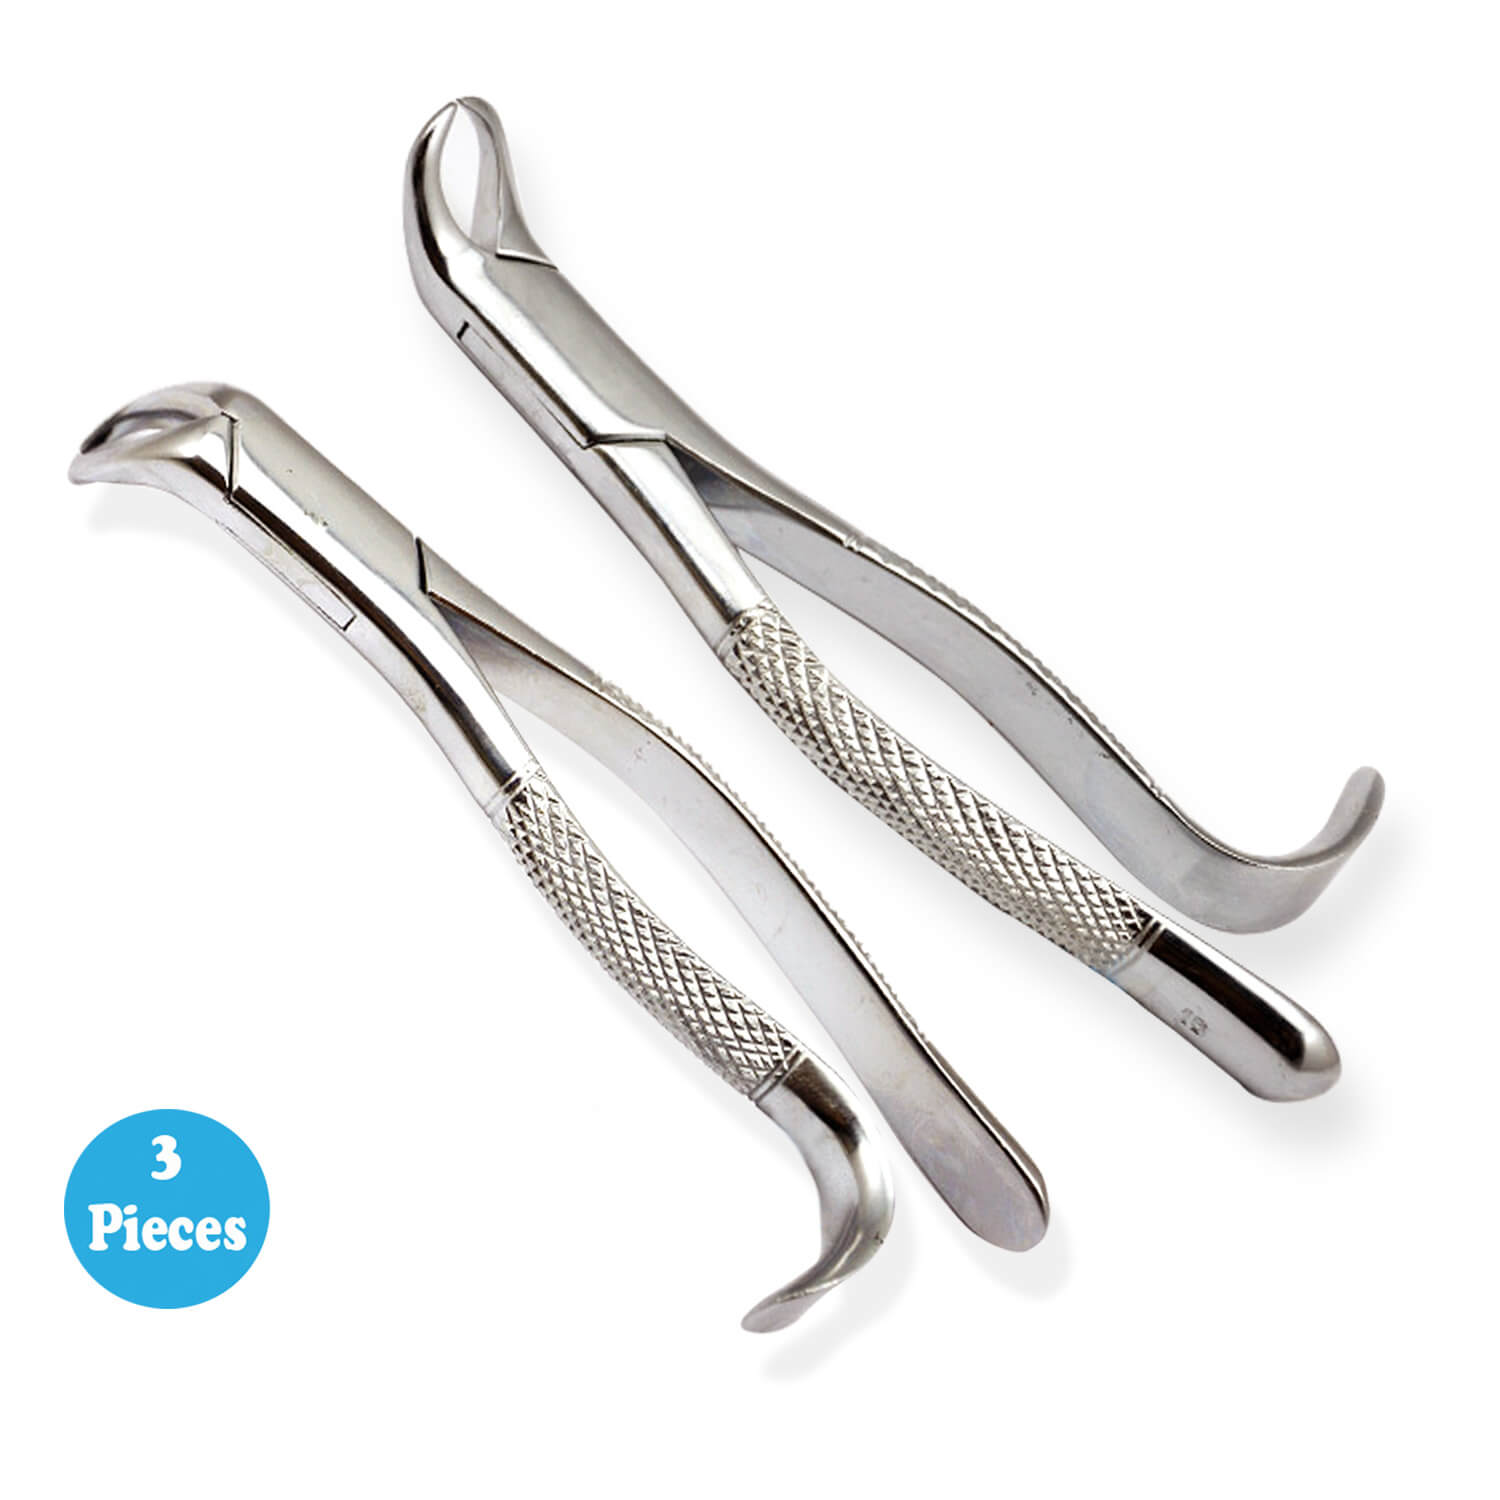 3 Extracting forceps Dental Surgical 16